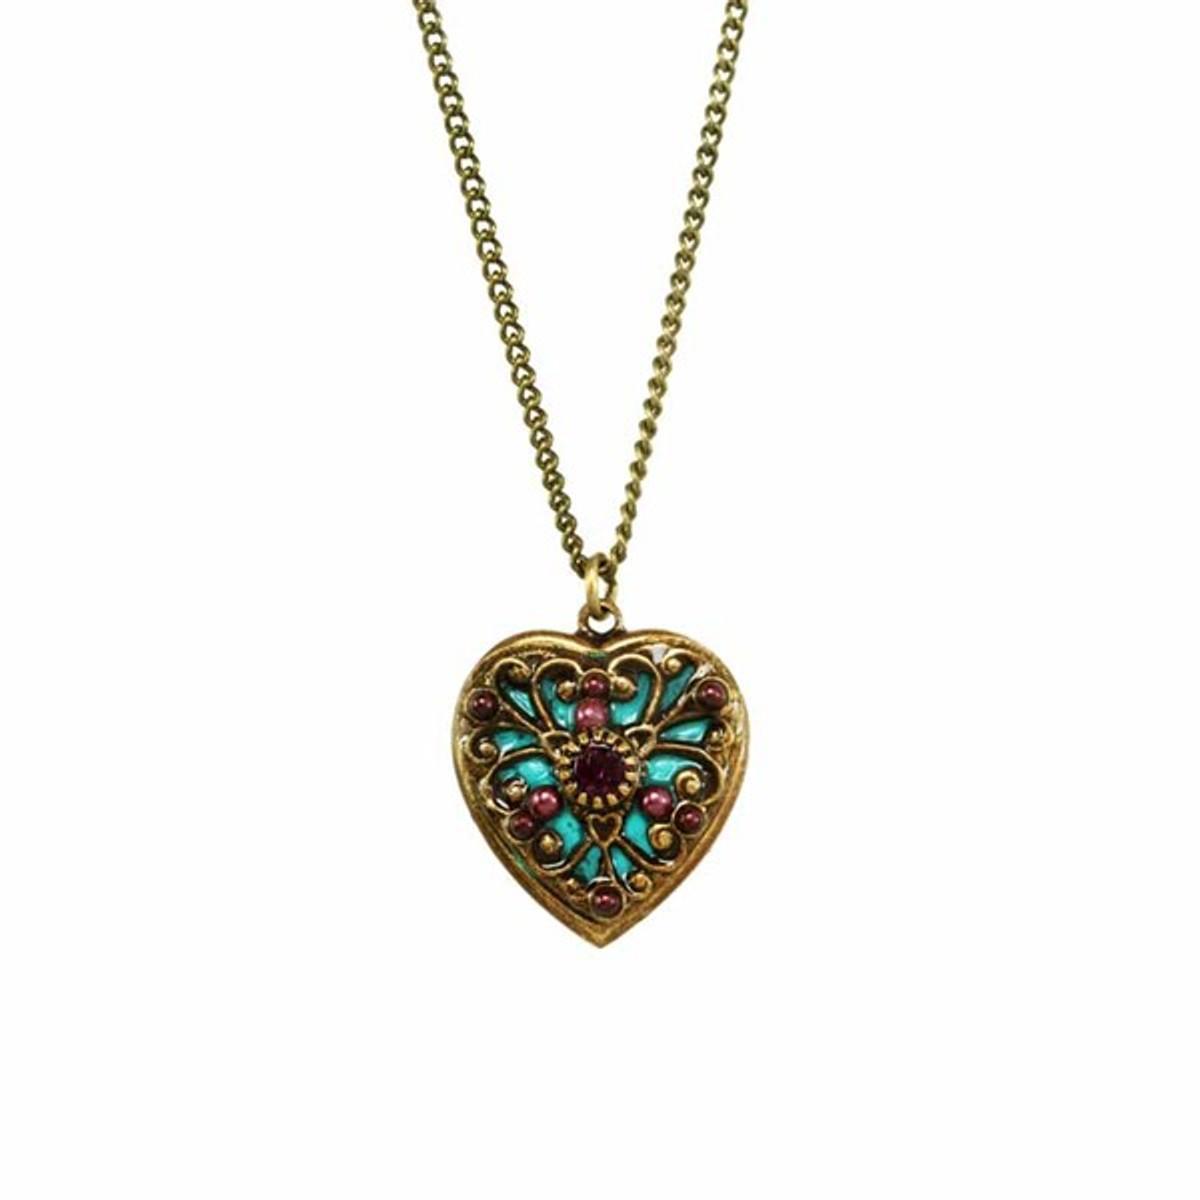 Heart necklaces from Michal Golan Jewelry